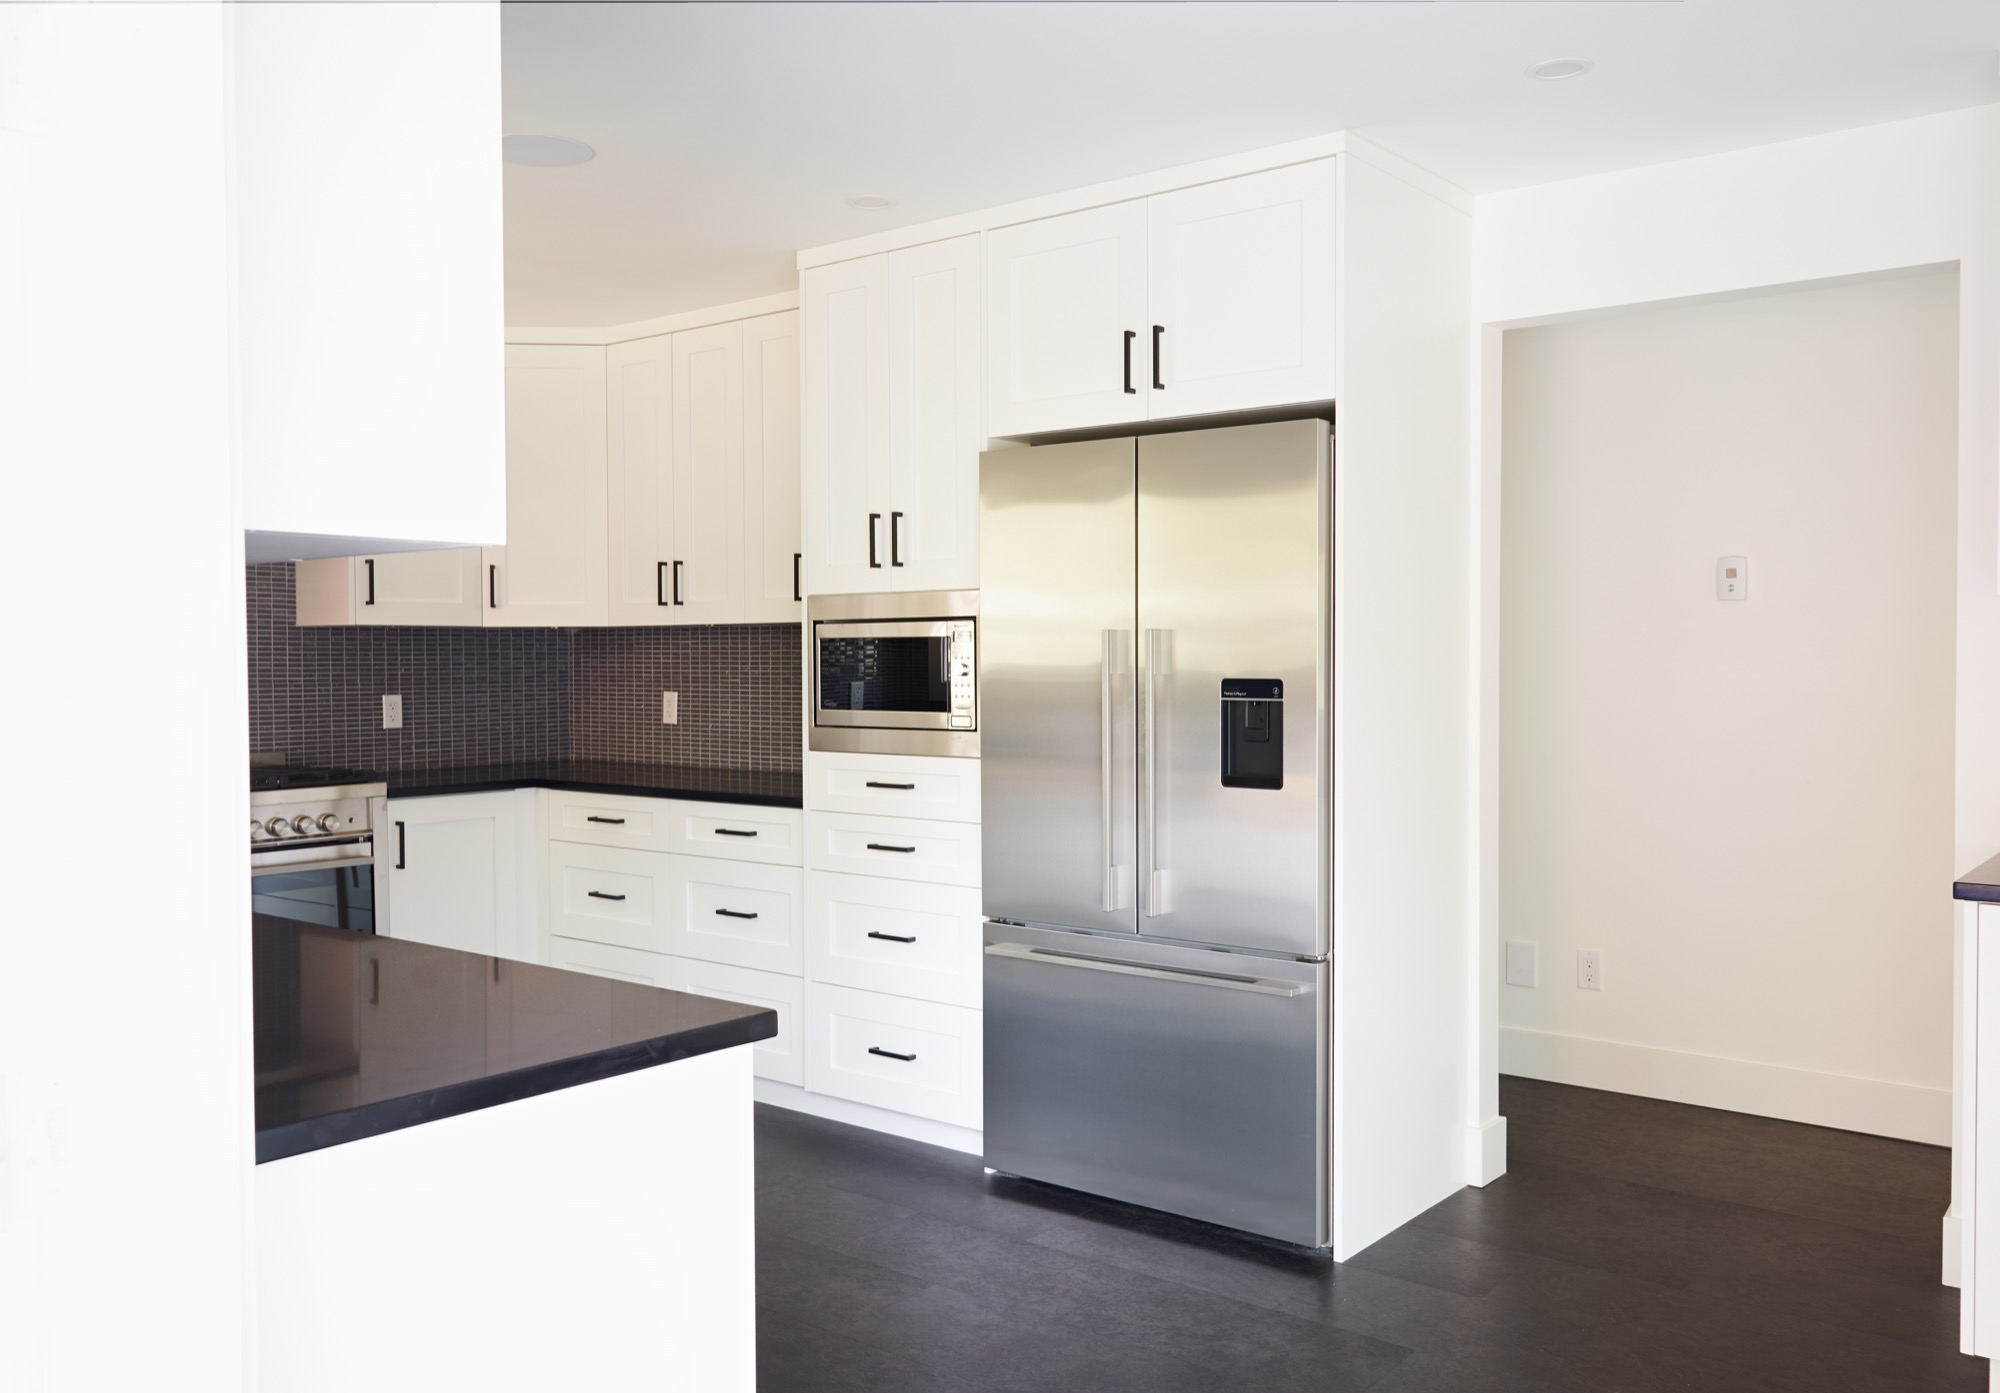 20180427_Ross Street_Kitchen_2.jpg